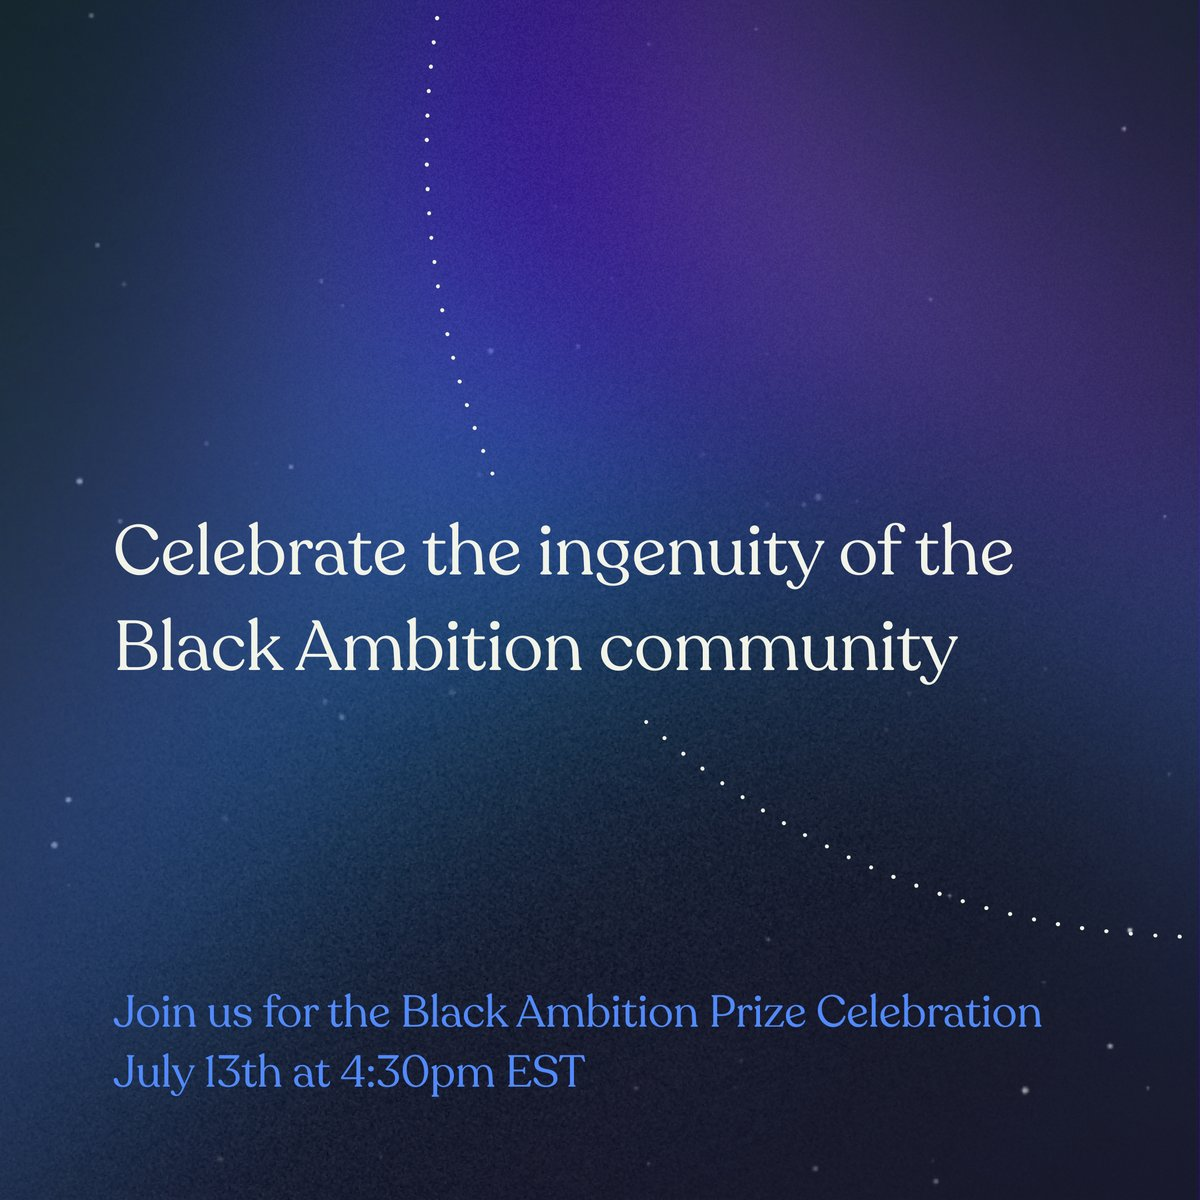 Today's the day! Join us at the Black Ambition Prize Celebration at 4:30pm EST.  Come celebrate the future of Black and Latinx entrepreneurship with us.  RSVP at https://t.co/afBZgXtwsP .•* https://t.co/gUC657TjFp